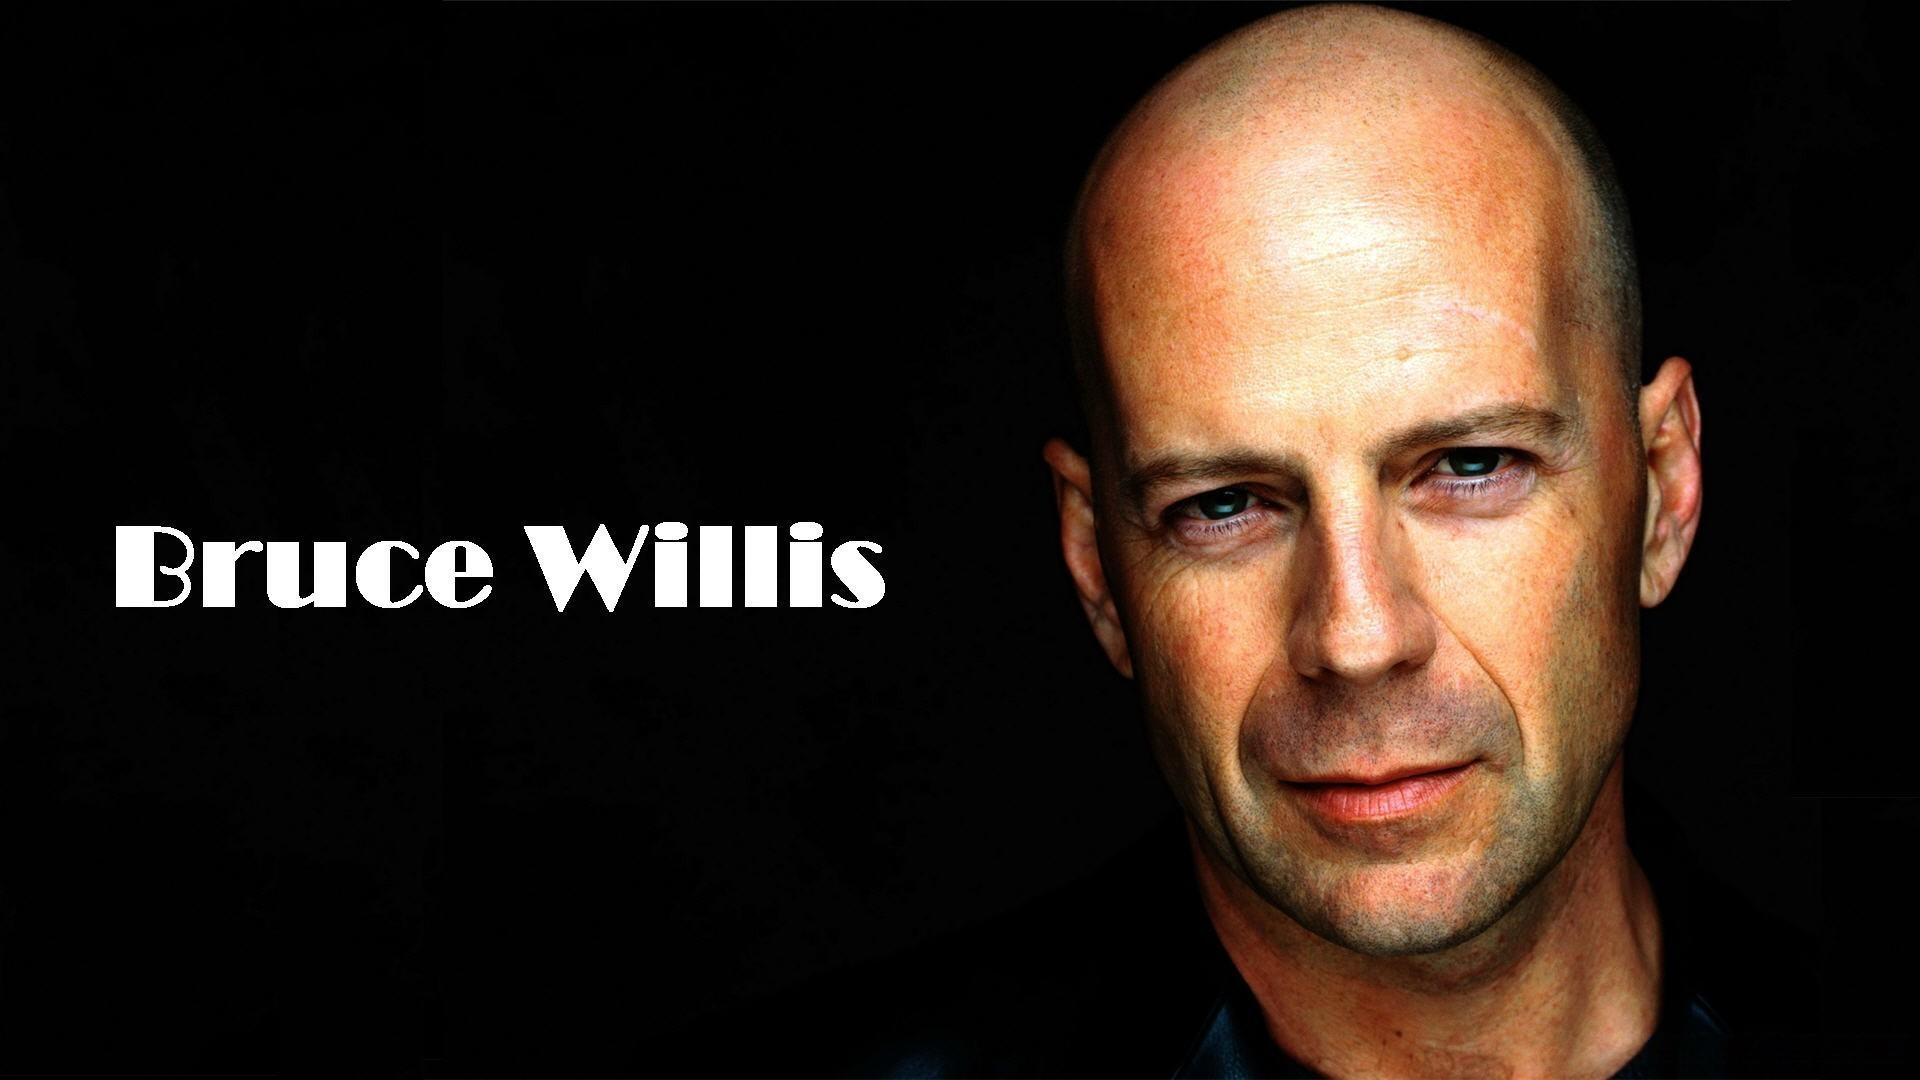 ca3dee1943527 Bruce Willis Wallpapers (64+ images)